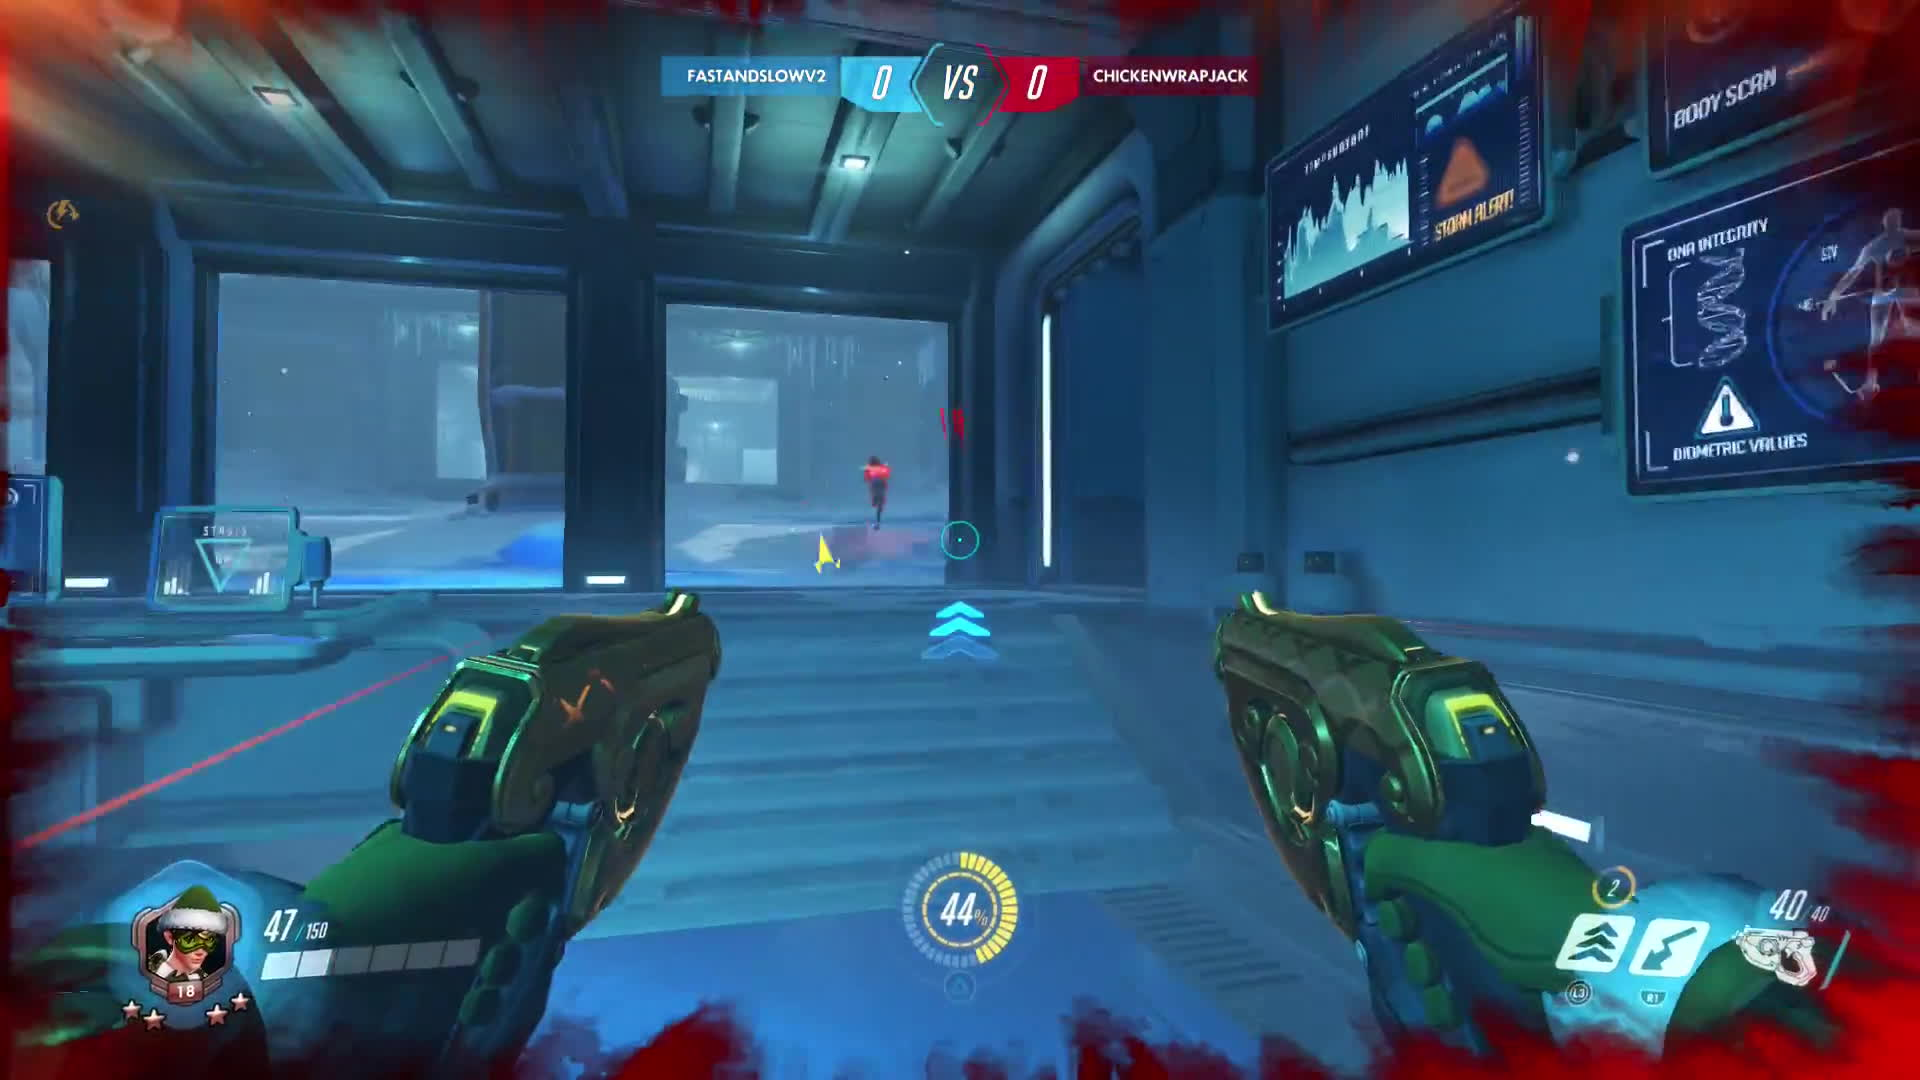 ▷ Blizzard WHAT!!!! - Overwatch GIF by fastandslow - Find